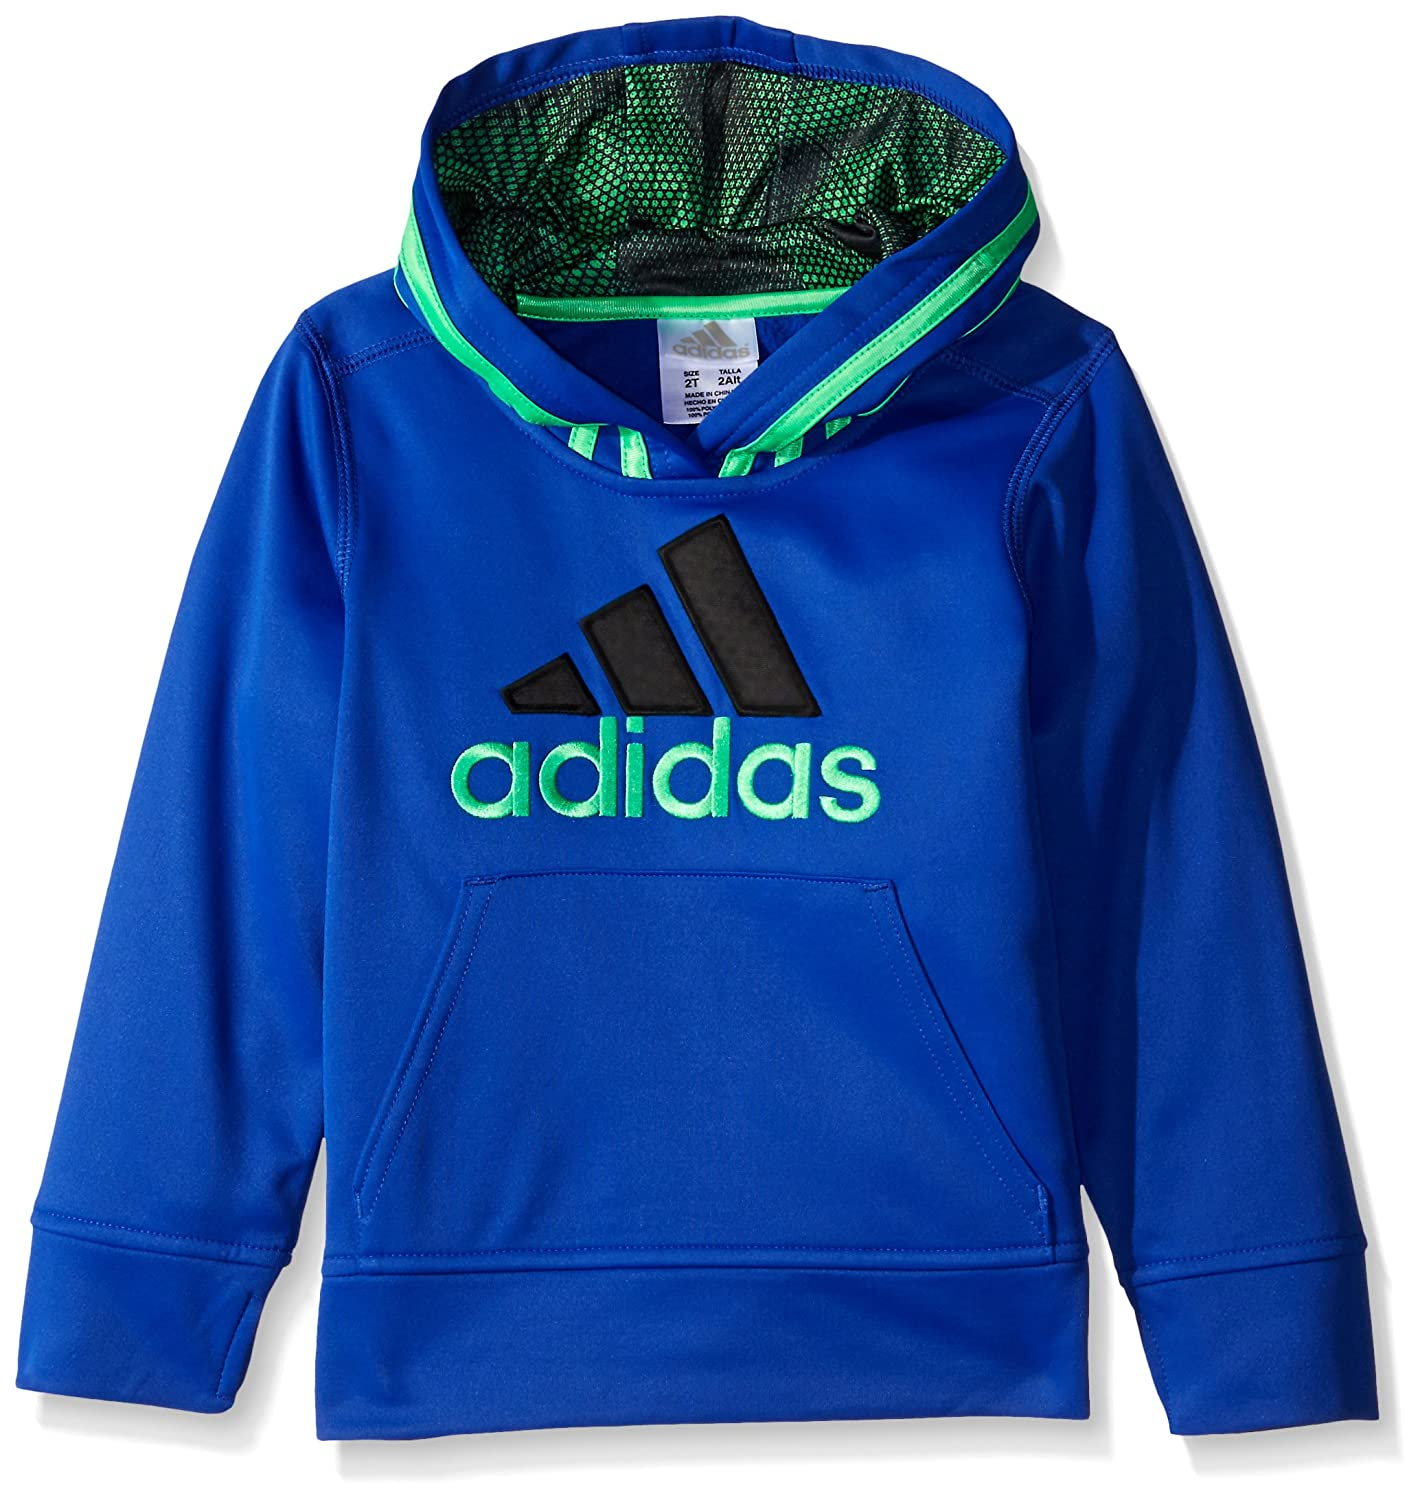 8b9a4f803 Amazon.com: adidas Toddler Boys' Athletic Pullover Hoodie, Bold Blue, 3T:  Clothing